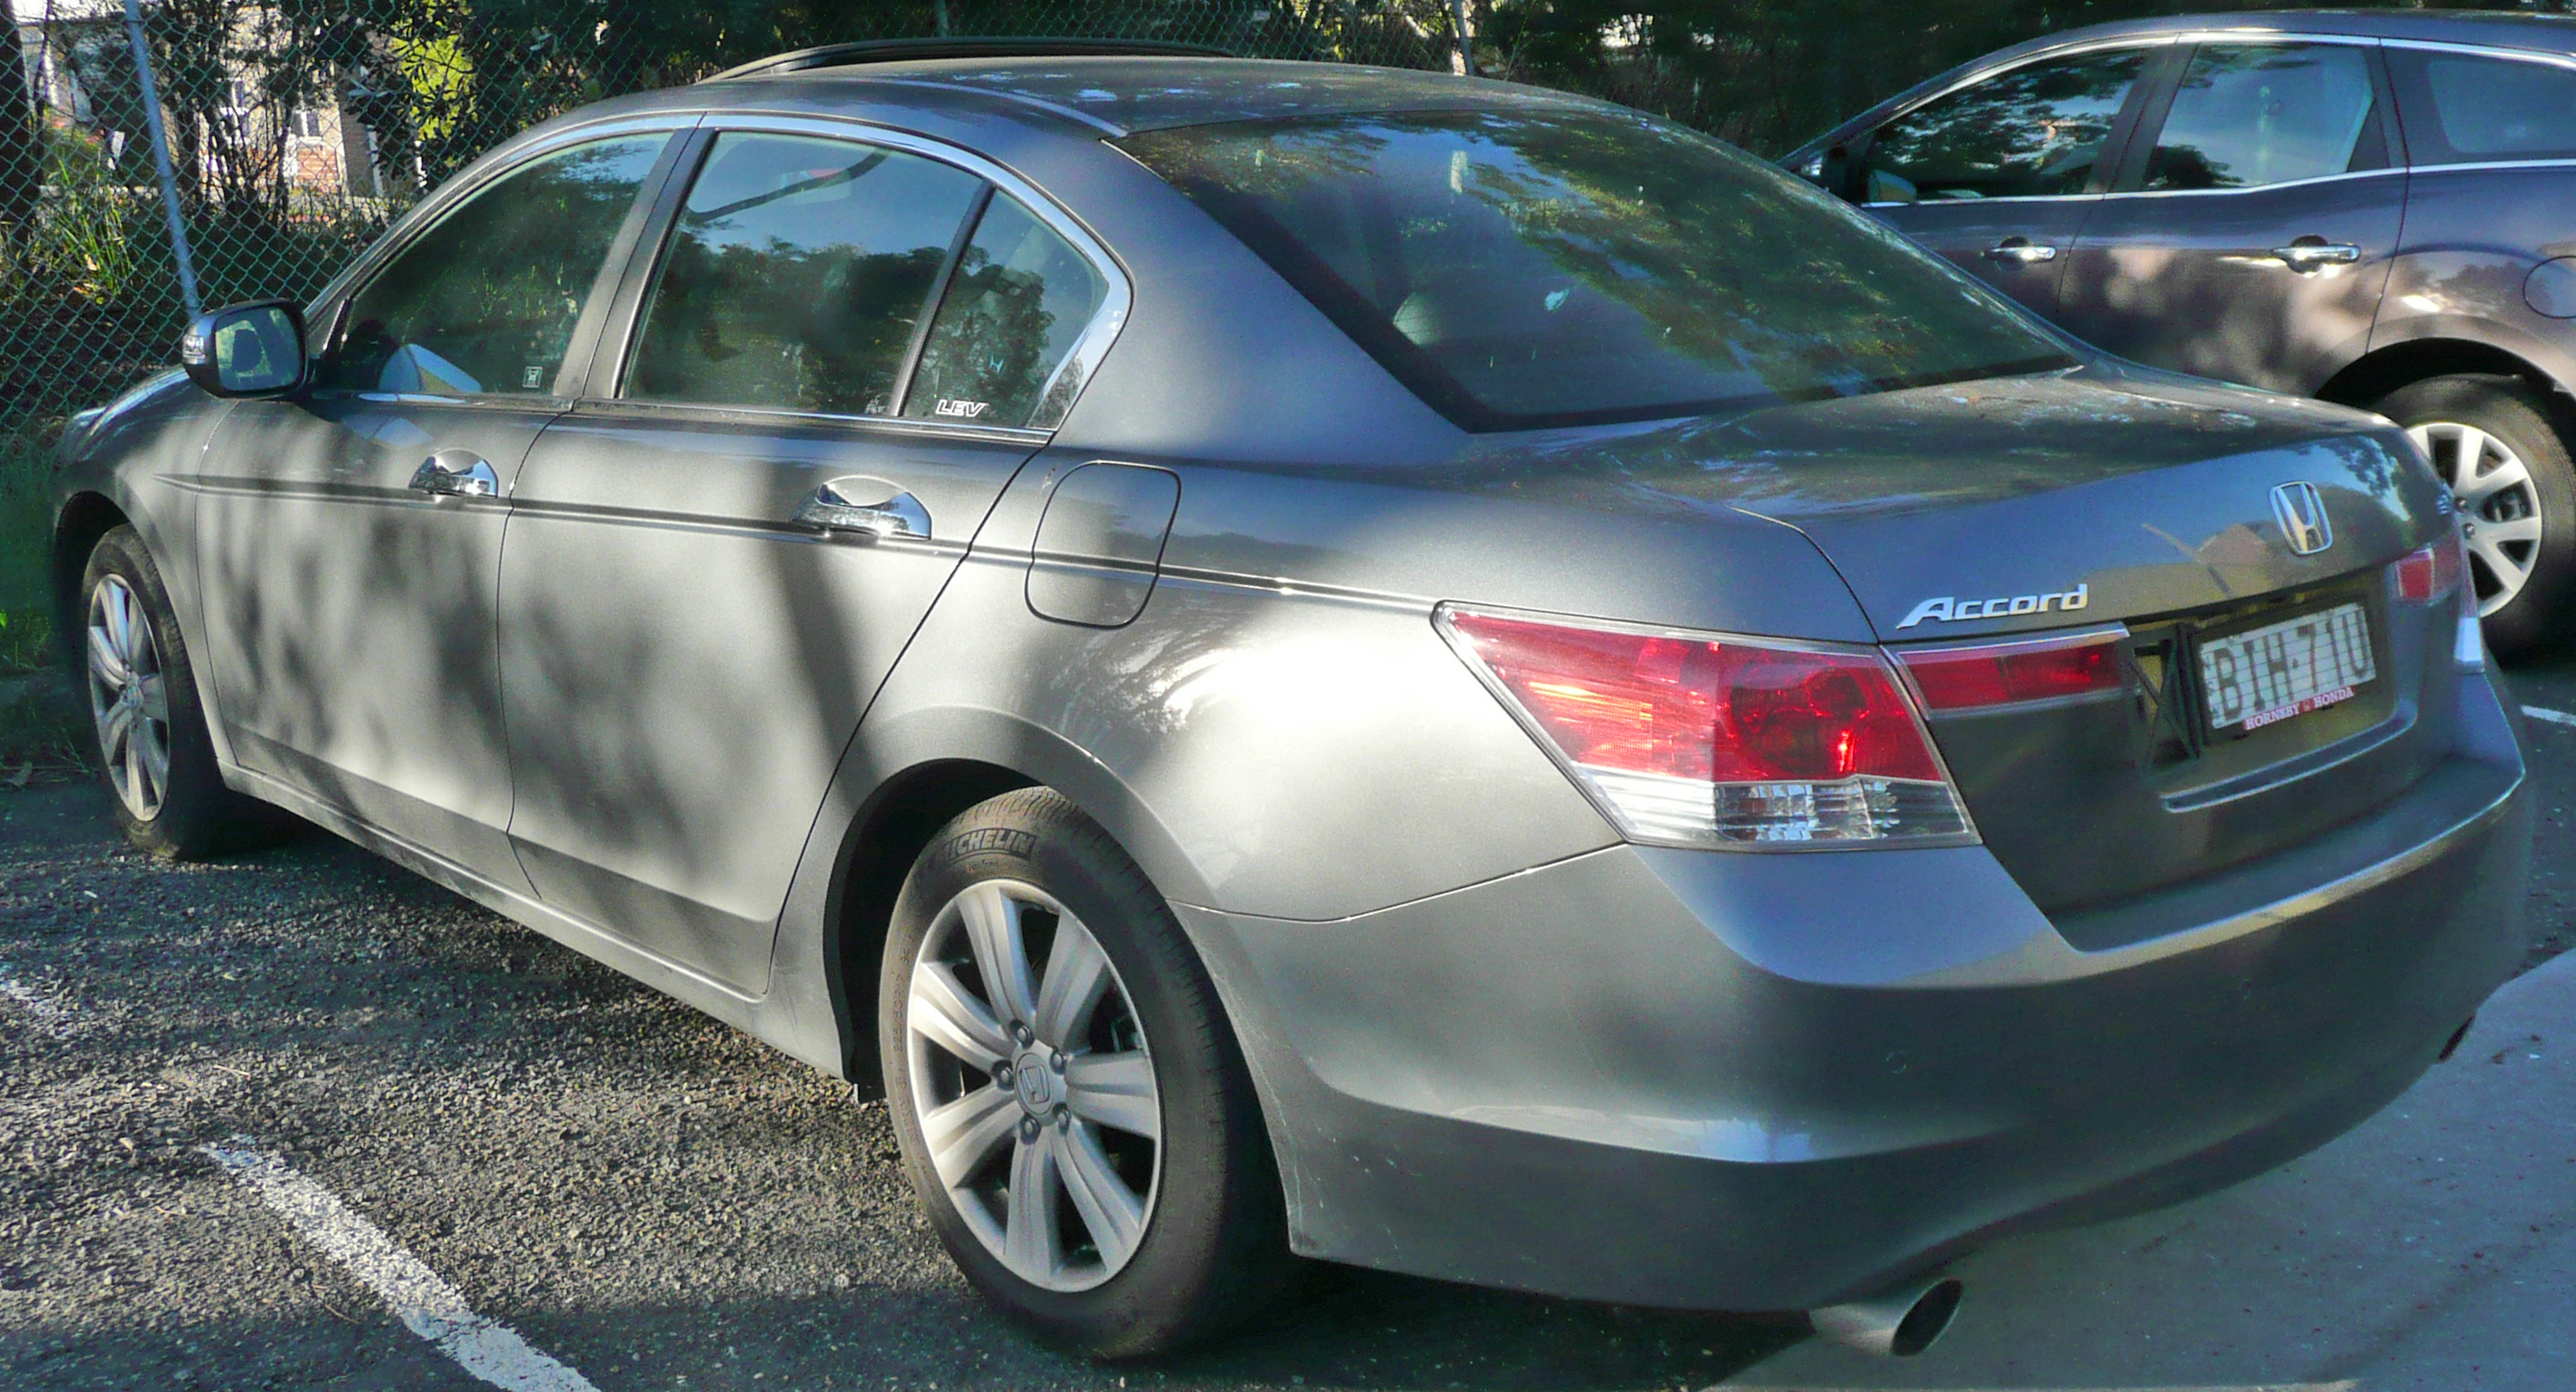 File 2008 2009 Honda Accord Cp3 V6 Luxury Sedan 01 Jpg Wikimedia